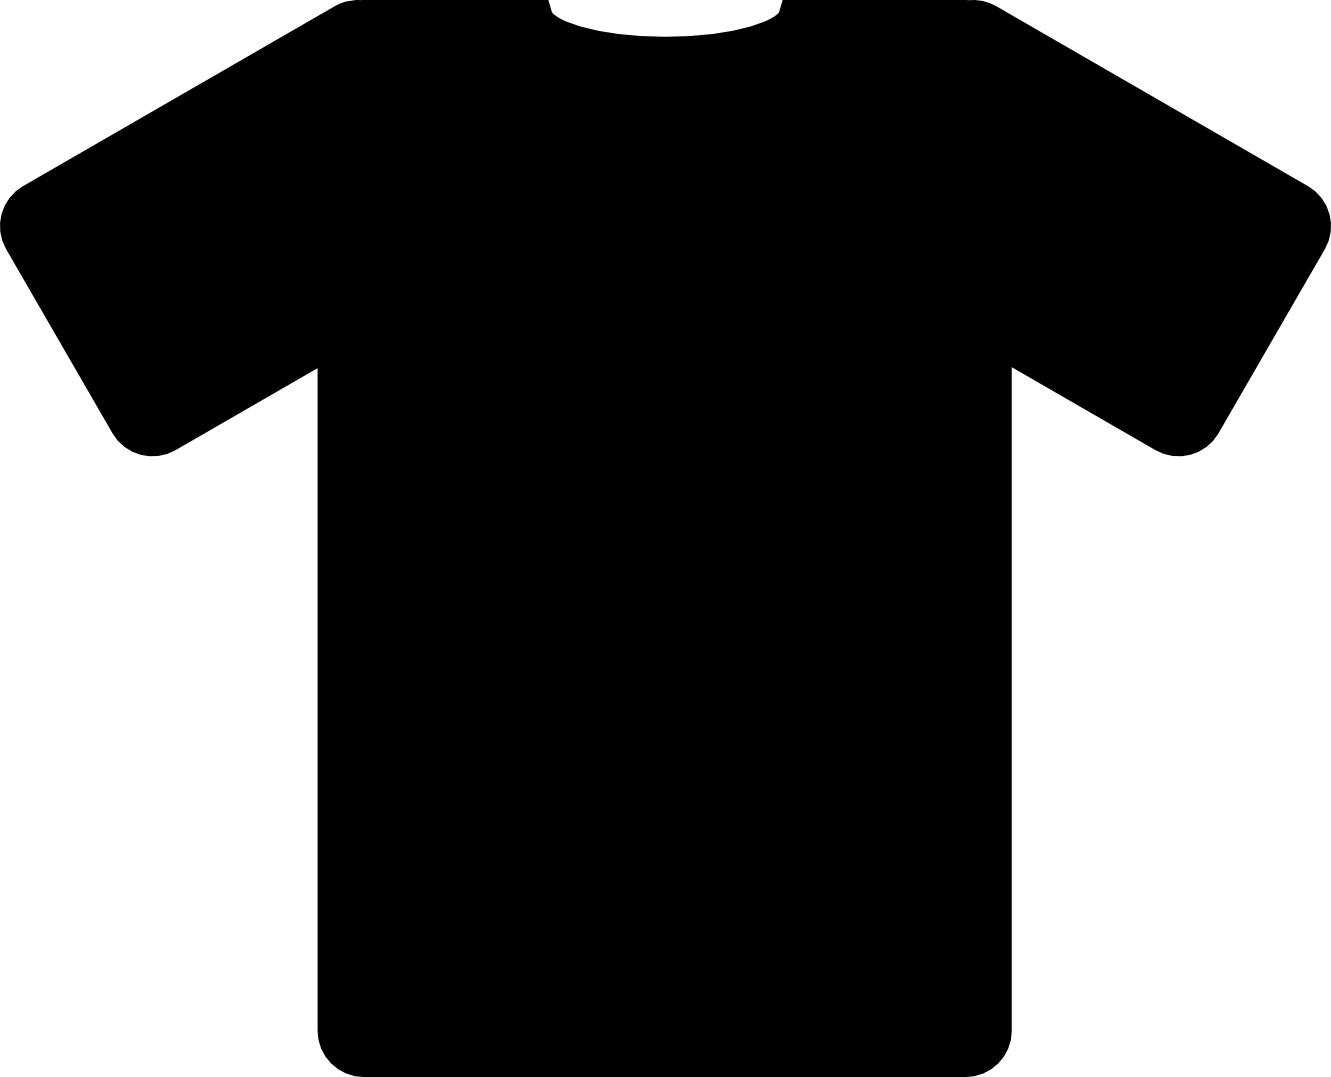 White T Shirt Clip Art - Cliparts.co